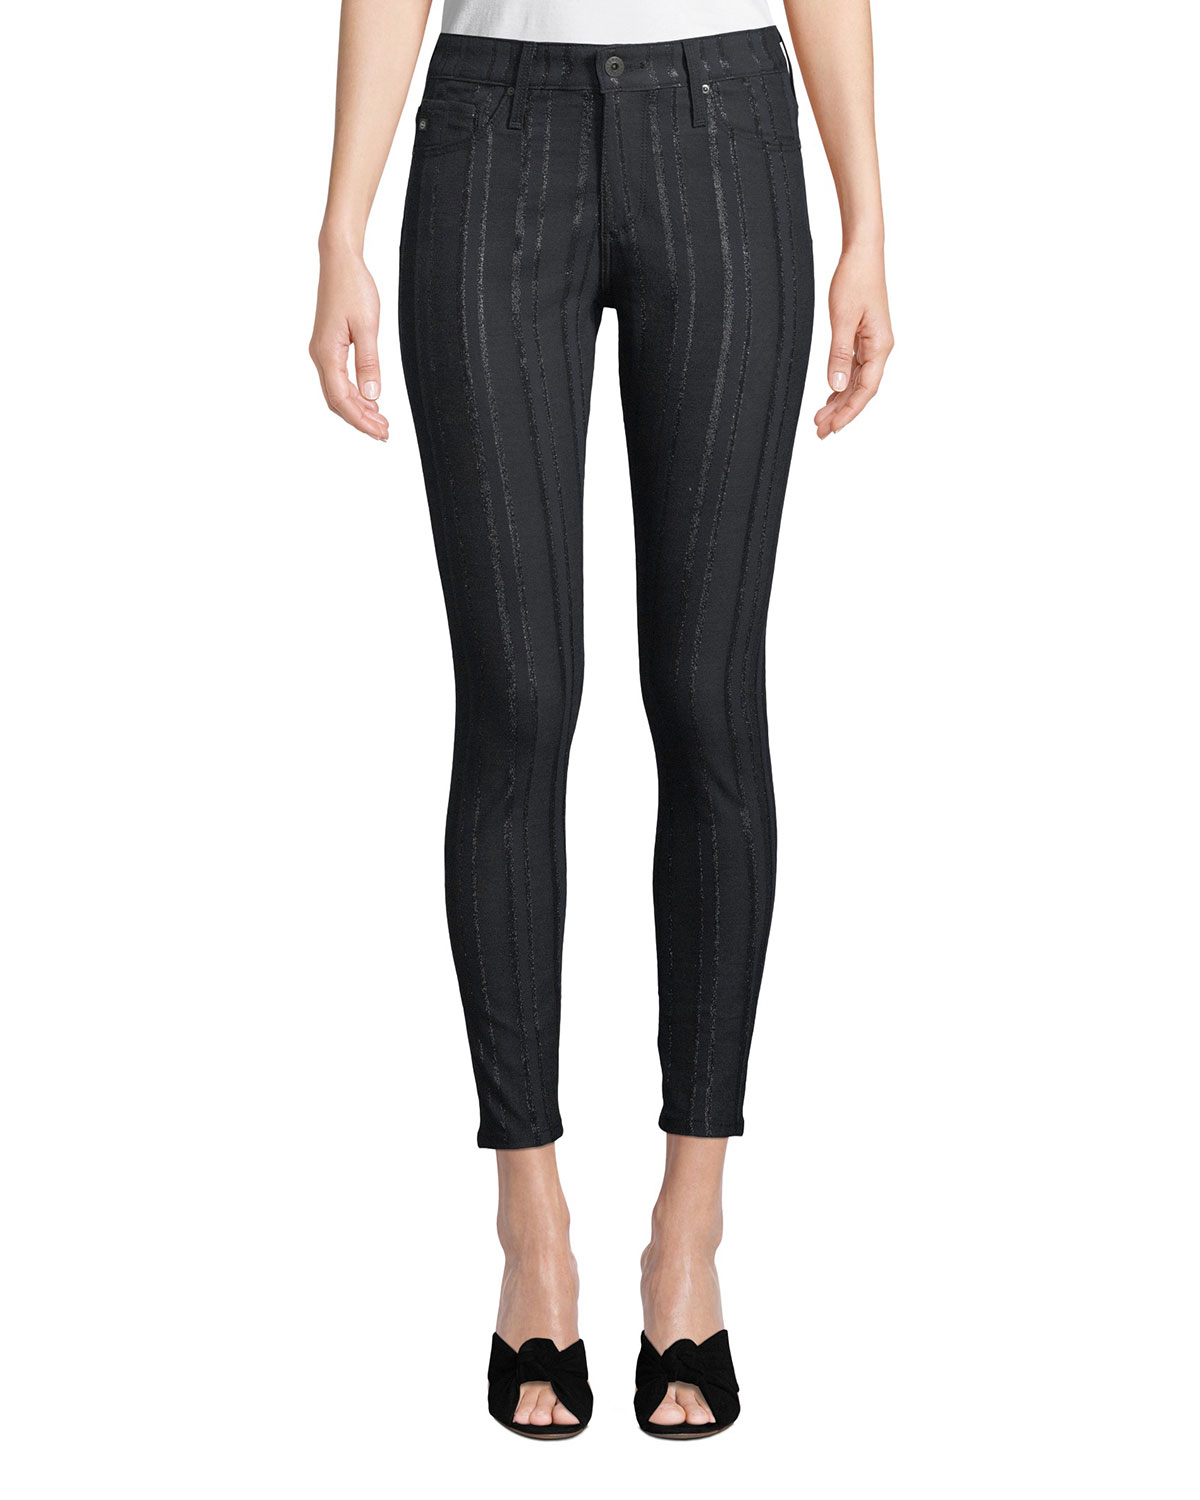 eb3a72547d63 AG Adriano GoldschmiedFarrah High-Rise Skinny Ankle Jeans with Metallic  Stripes